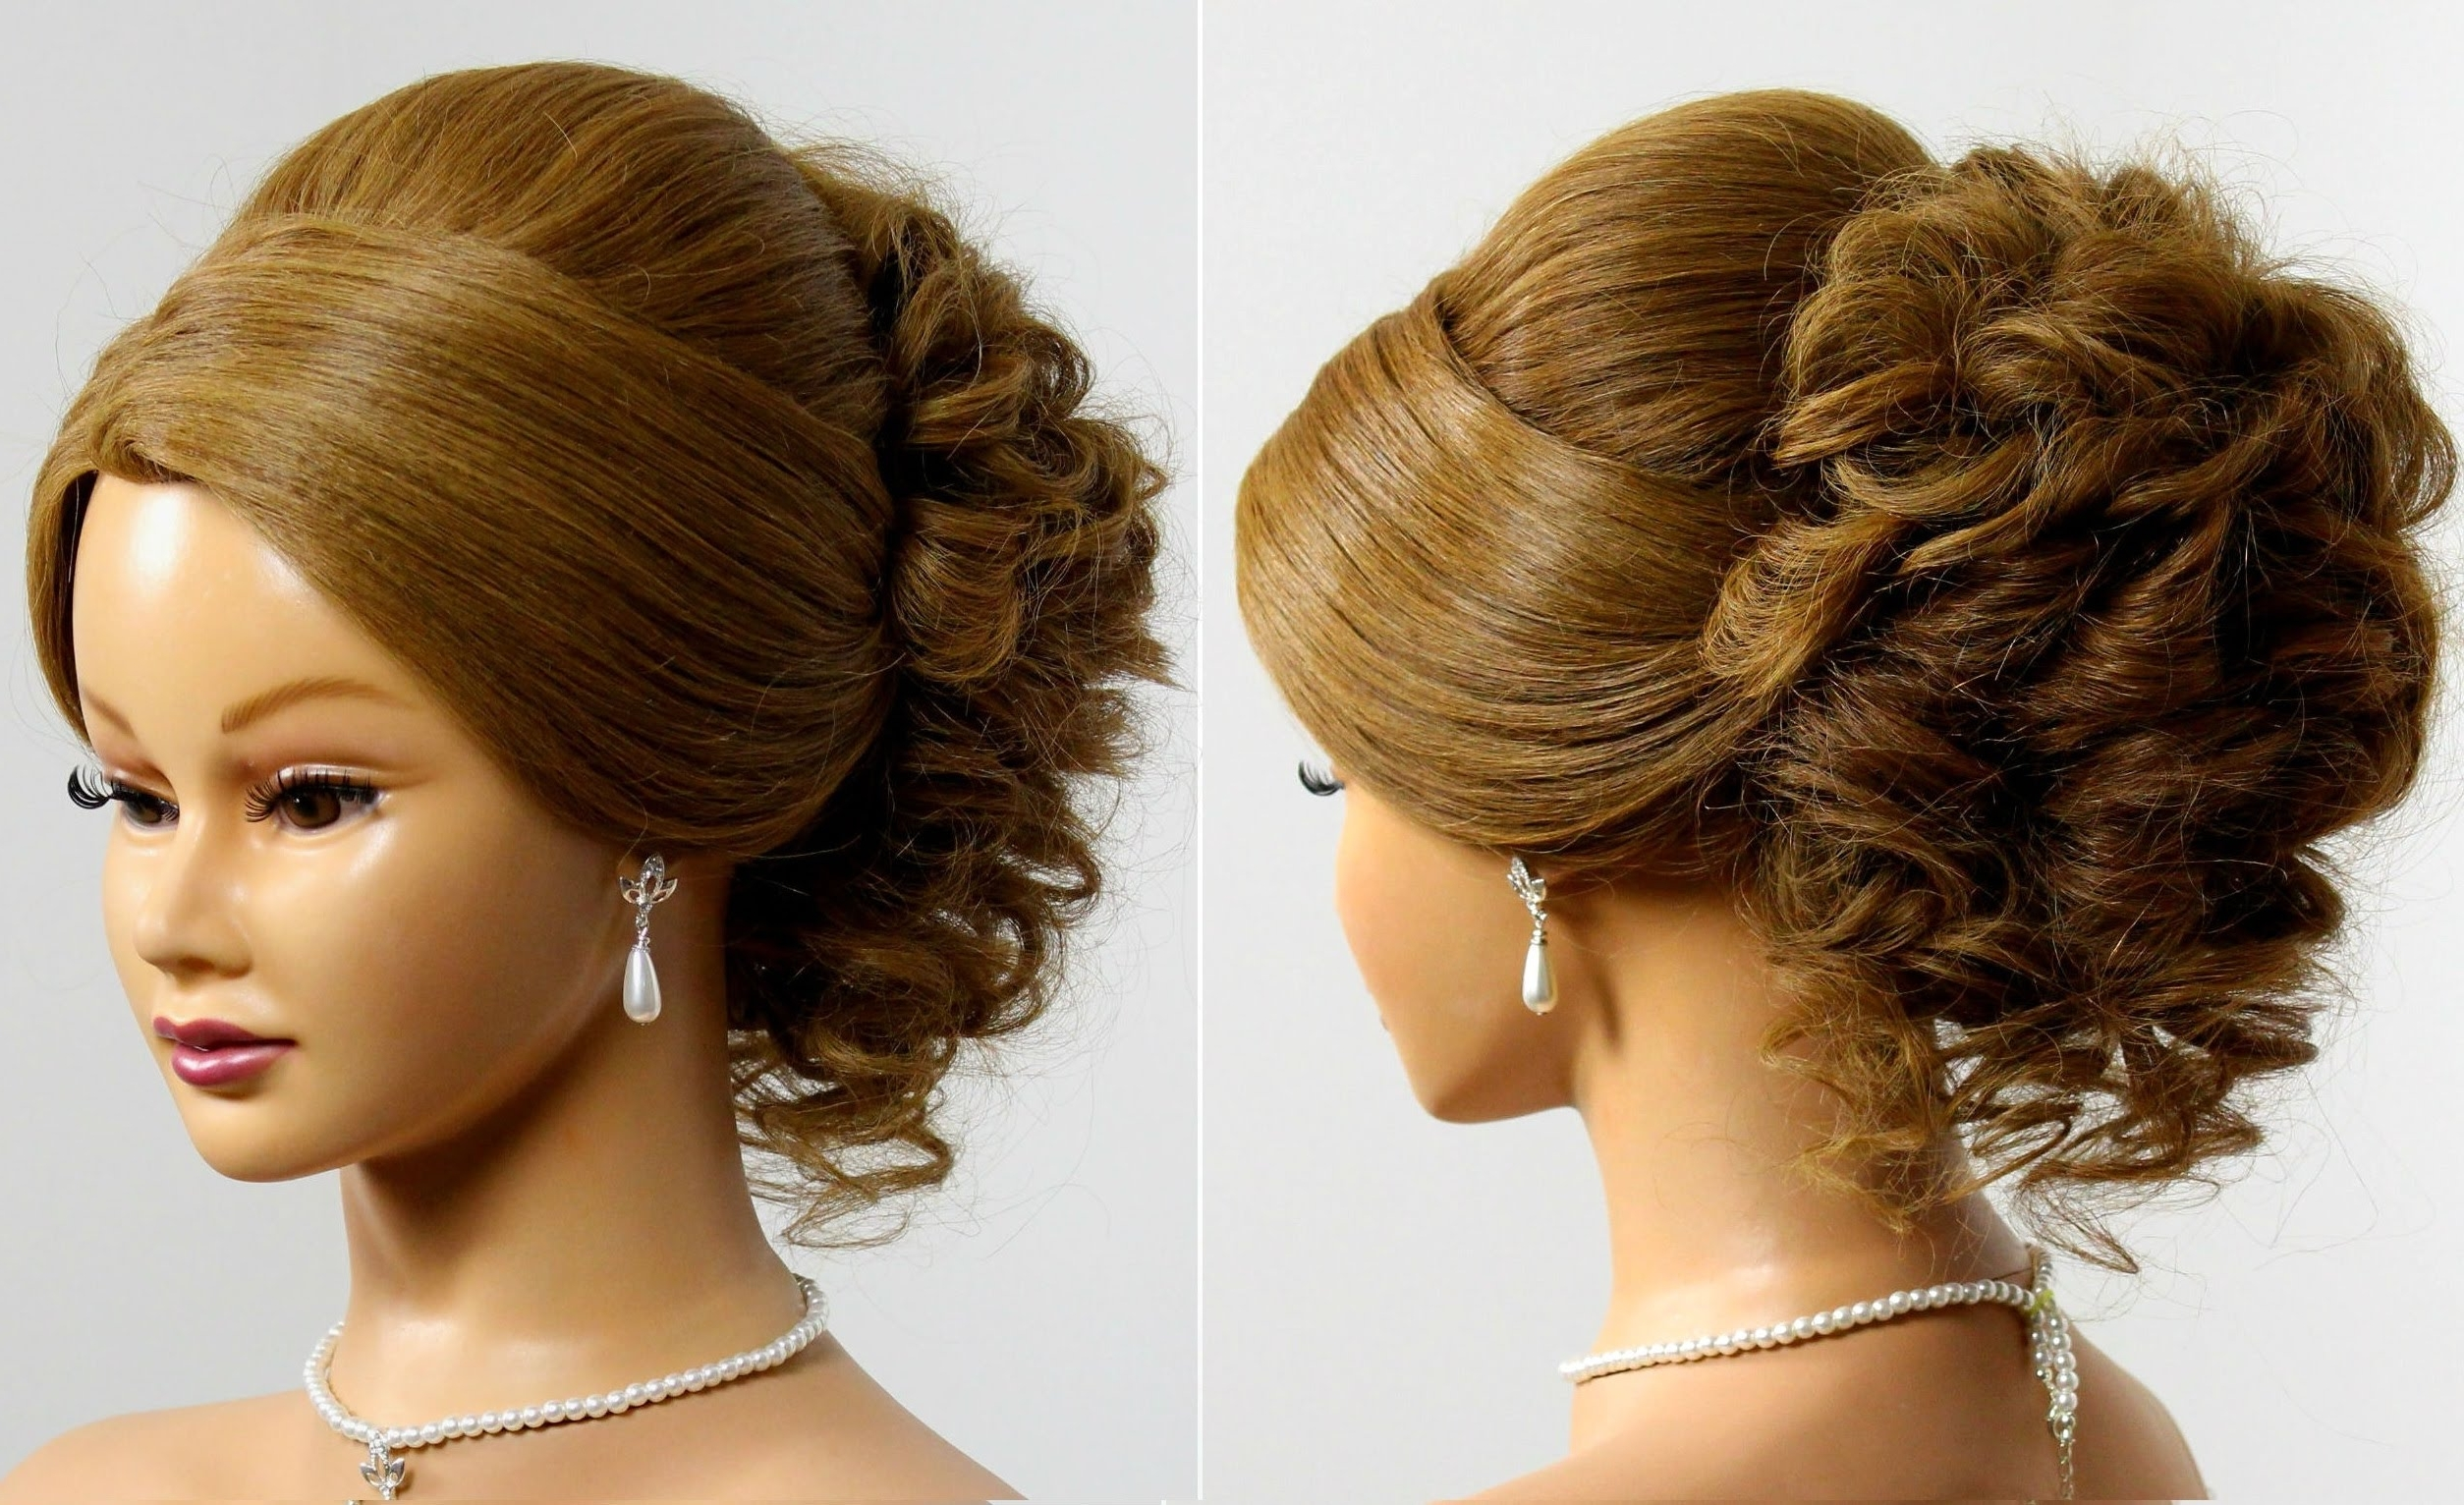 Hairstyles For Medium Hair For Prom – Hairstyle For Women & Man Regarding Prom Updo Hairstyles For Medium Hair (View 6 of 15)